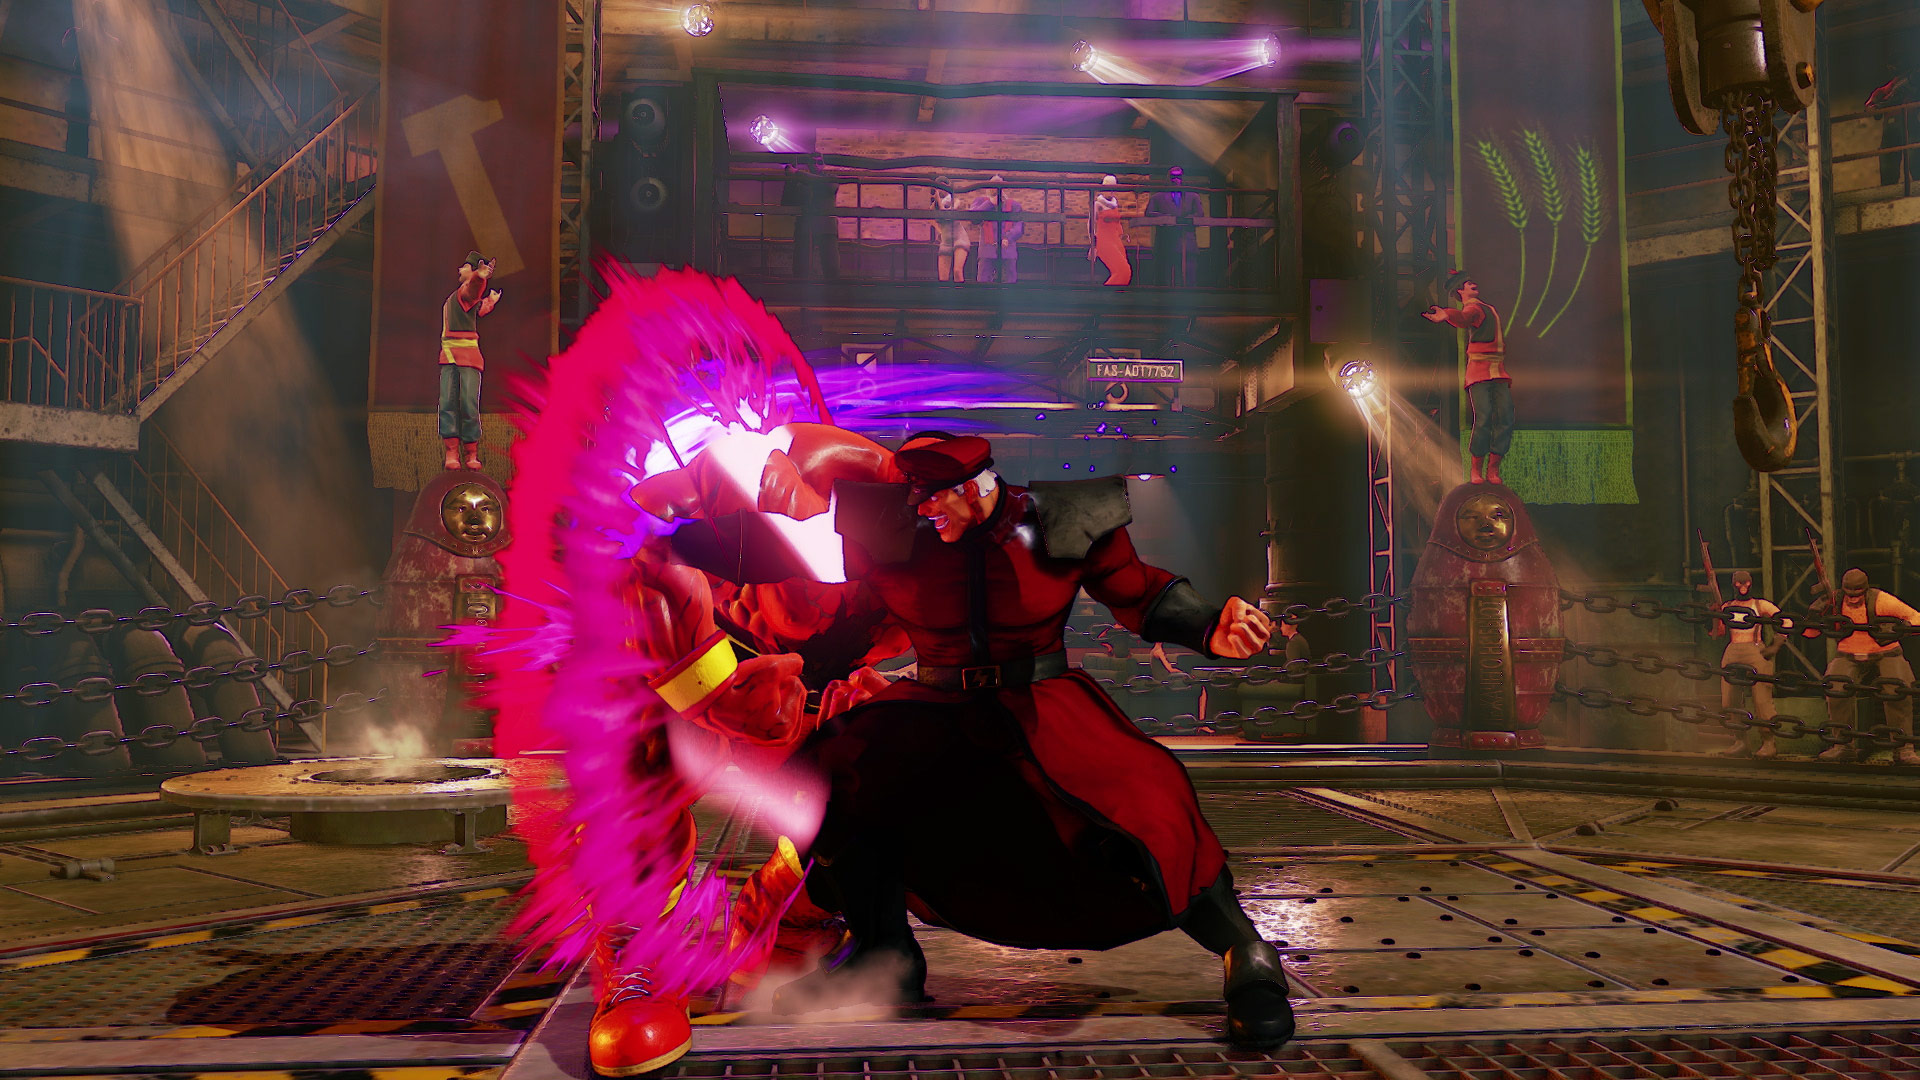 Zangief returns in Street Fighter 5 14 out of 18 image gallery